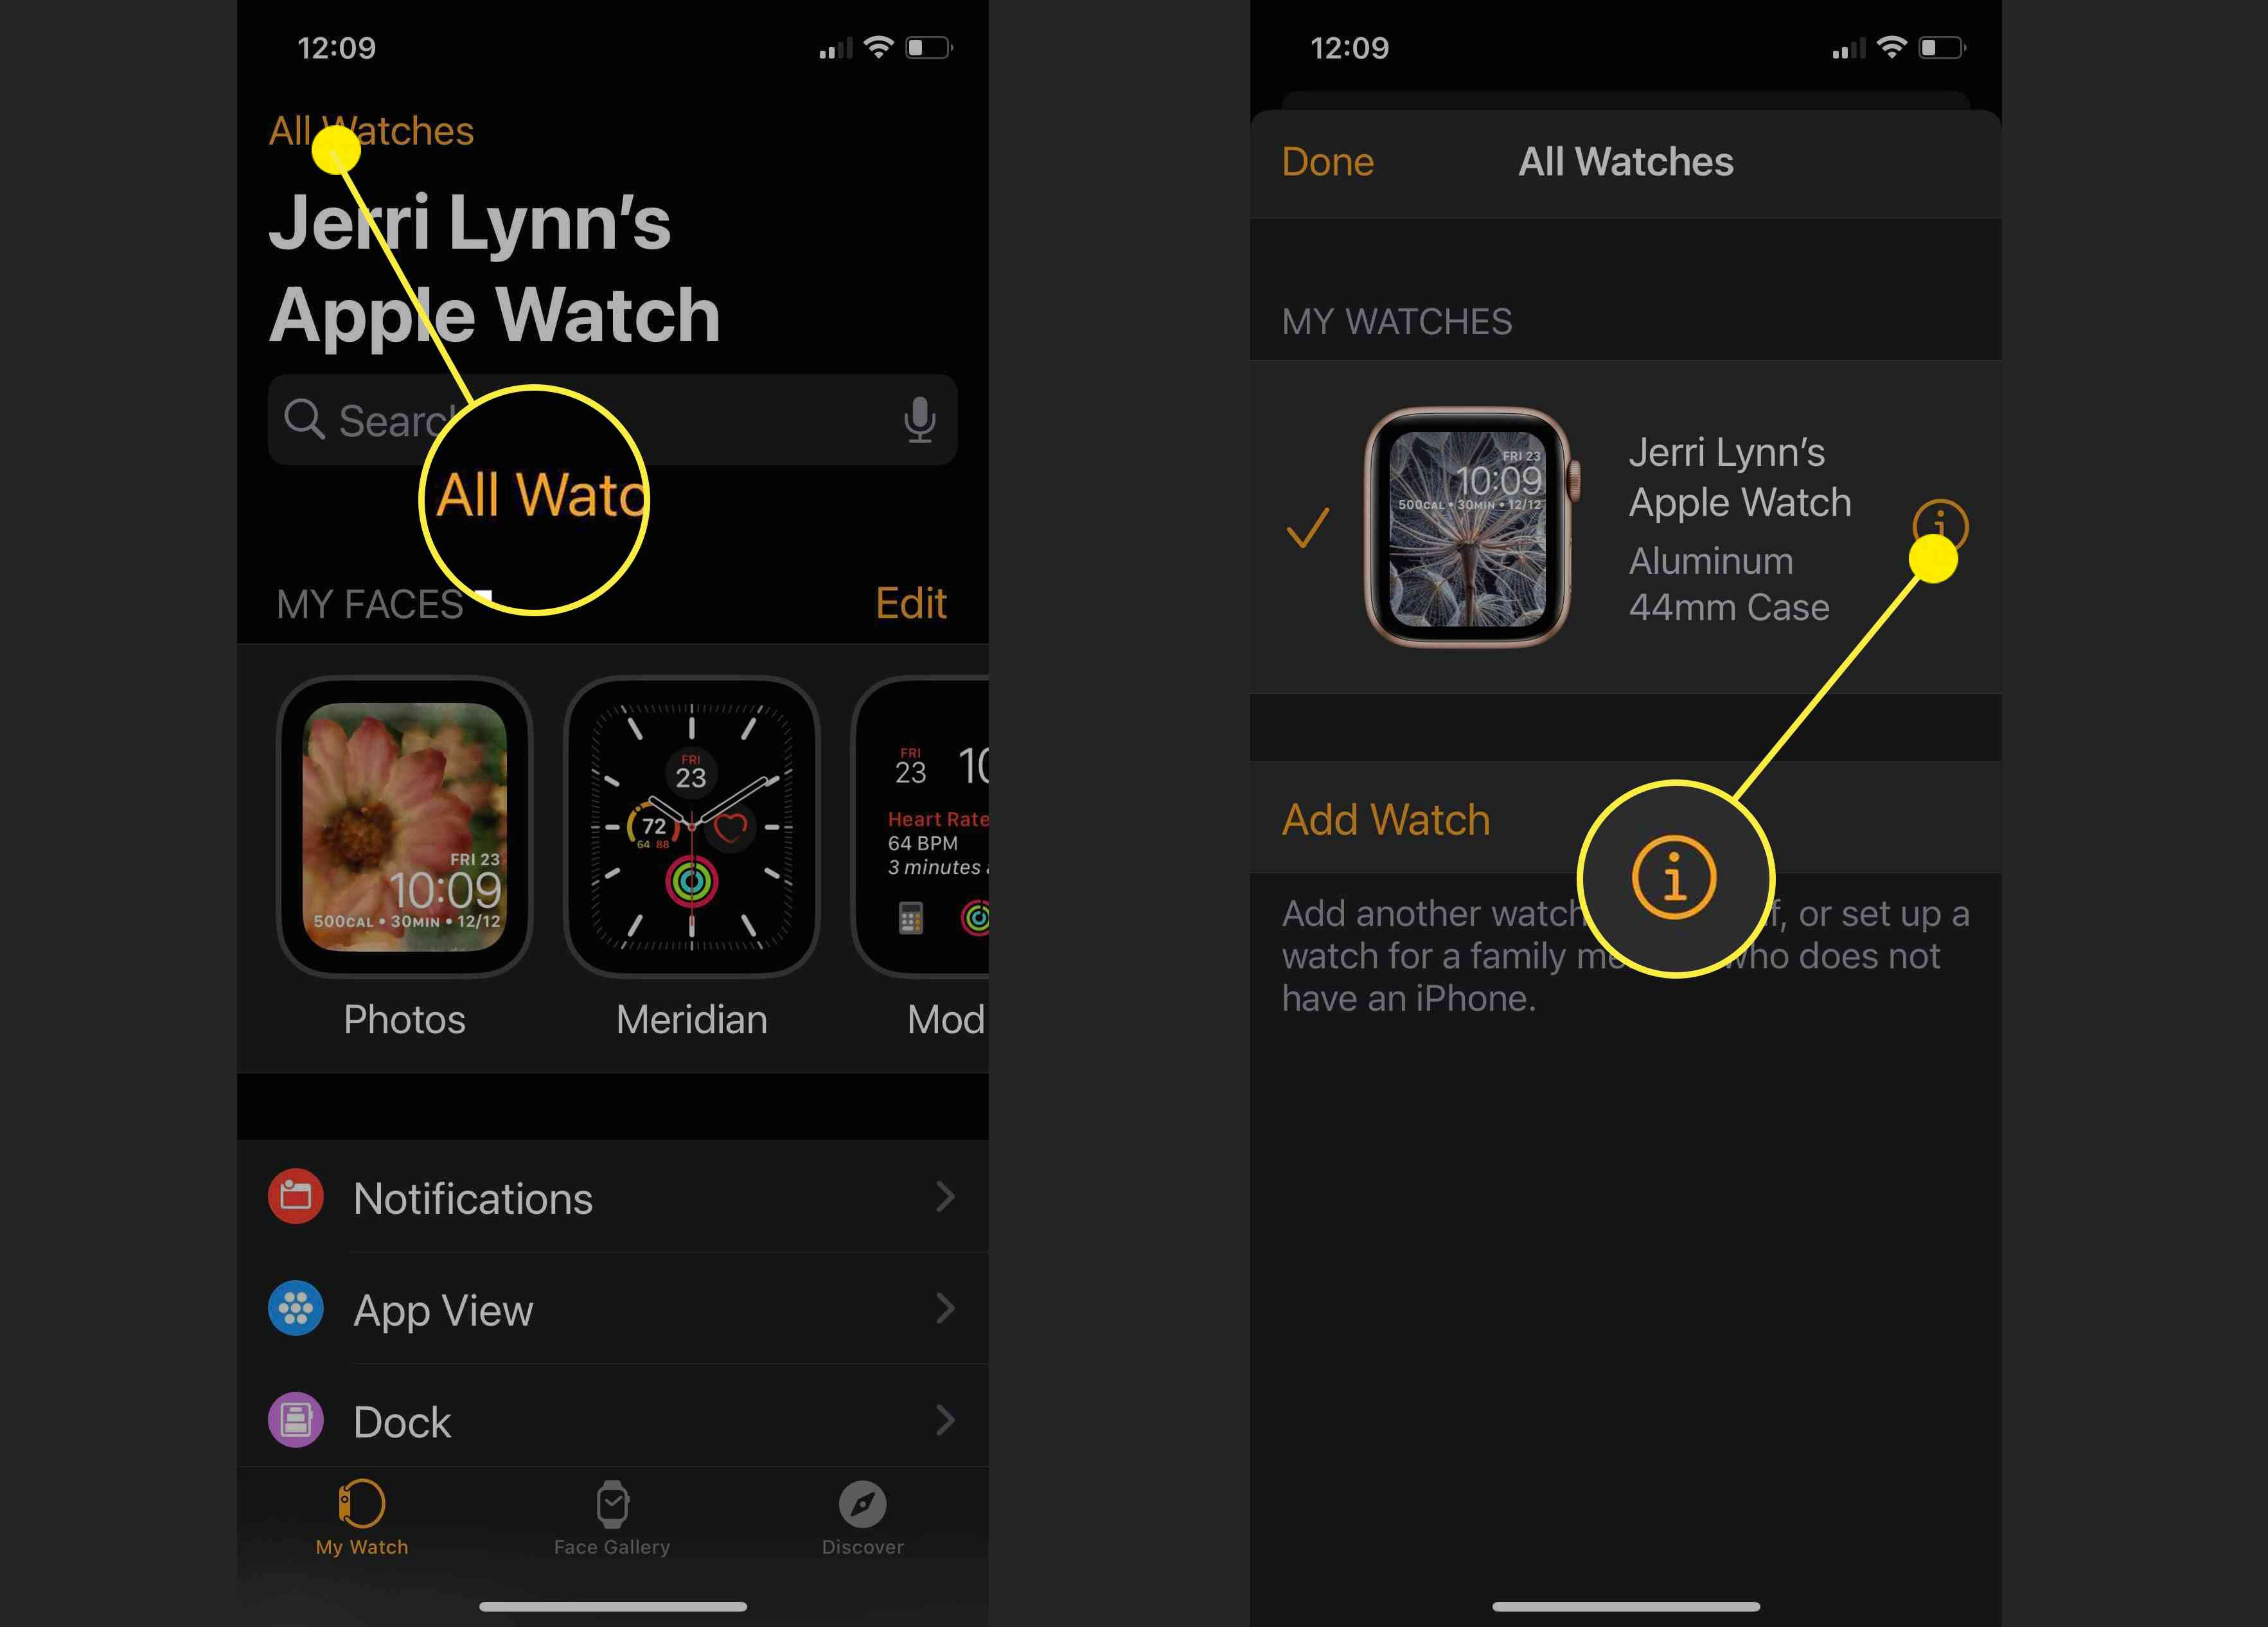 Screenshots showing how to get to the information screen for an Apple Watch.